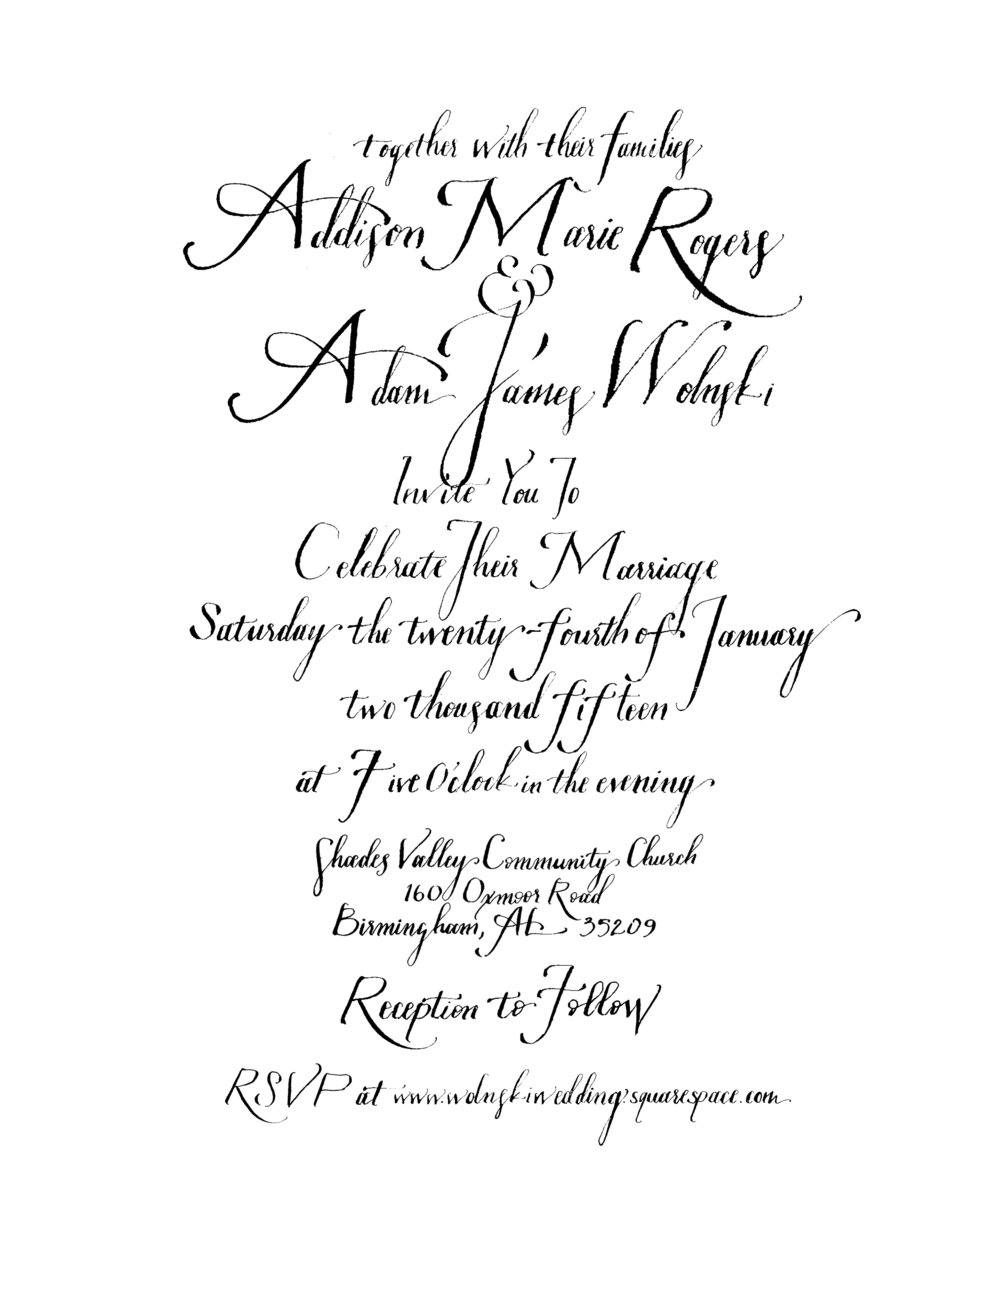 wedding invitation for my incredible brother and new treasured sister.